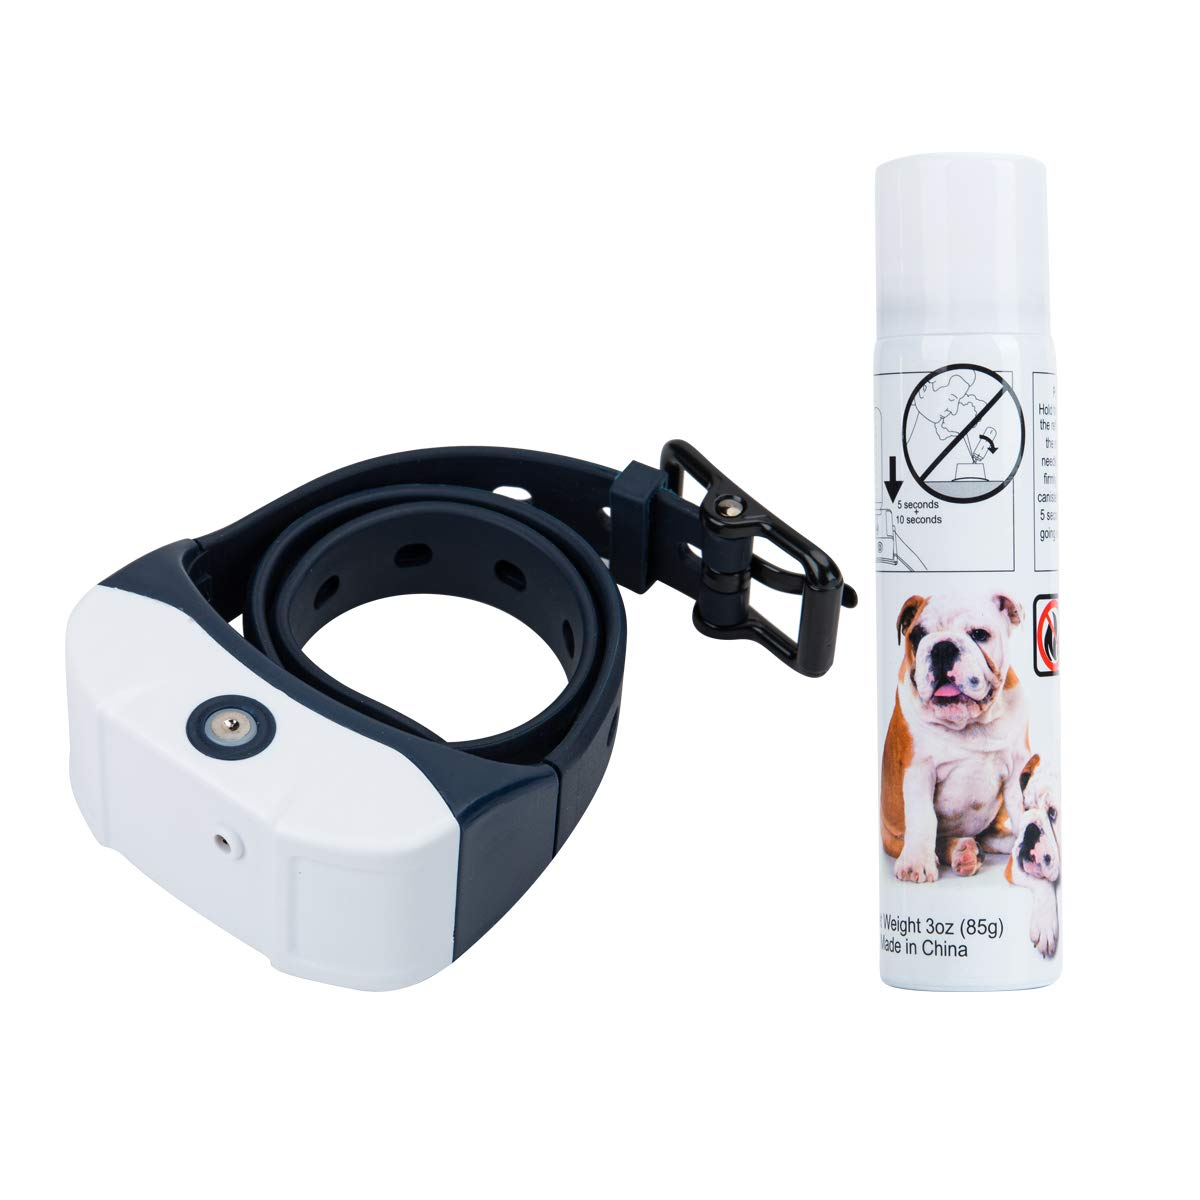 Jing Cheng [Newest 2019] Dog Bark Spray Collar, Rechargeable Waterproof Anti-bark Adjustable Pet Training Collars Device for Small Medium Large Dogs by Jing Cheng